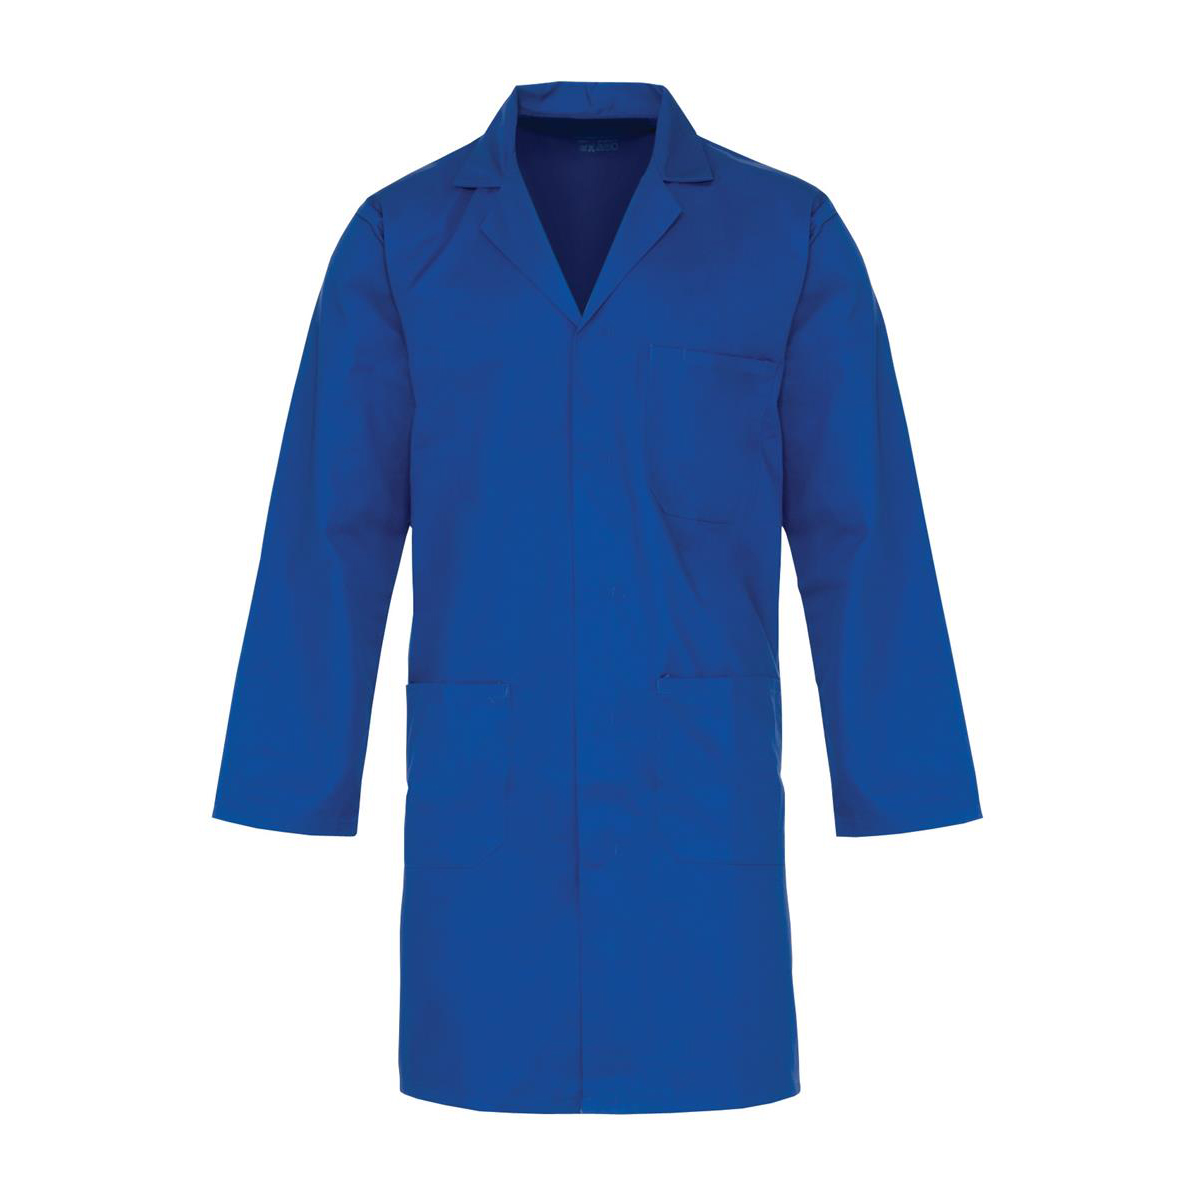 Click Lab Coat Polycotton with 3 Pockets Large Navy Ref PCWCN44 Approx 3 Day Leadtime